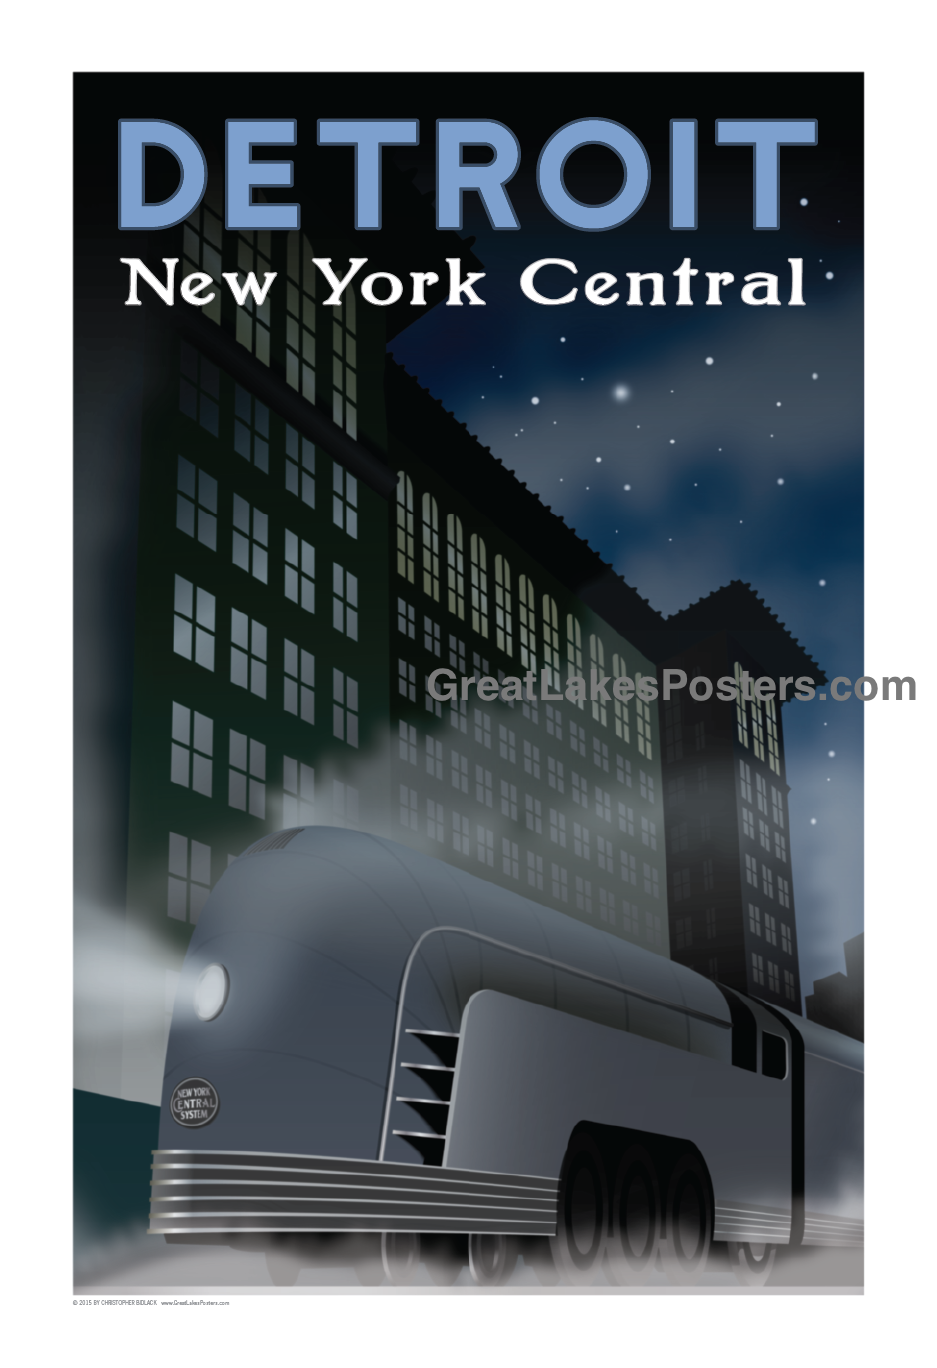 Detroit Train Poster - Final Lo-Res WATERMARKED.png